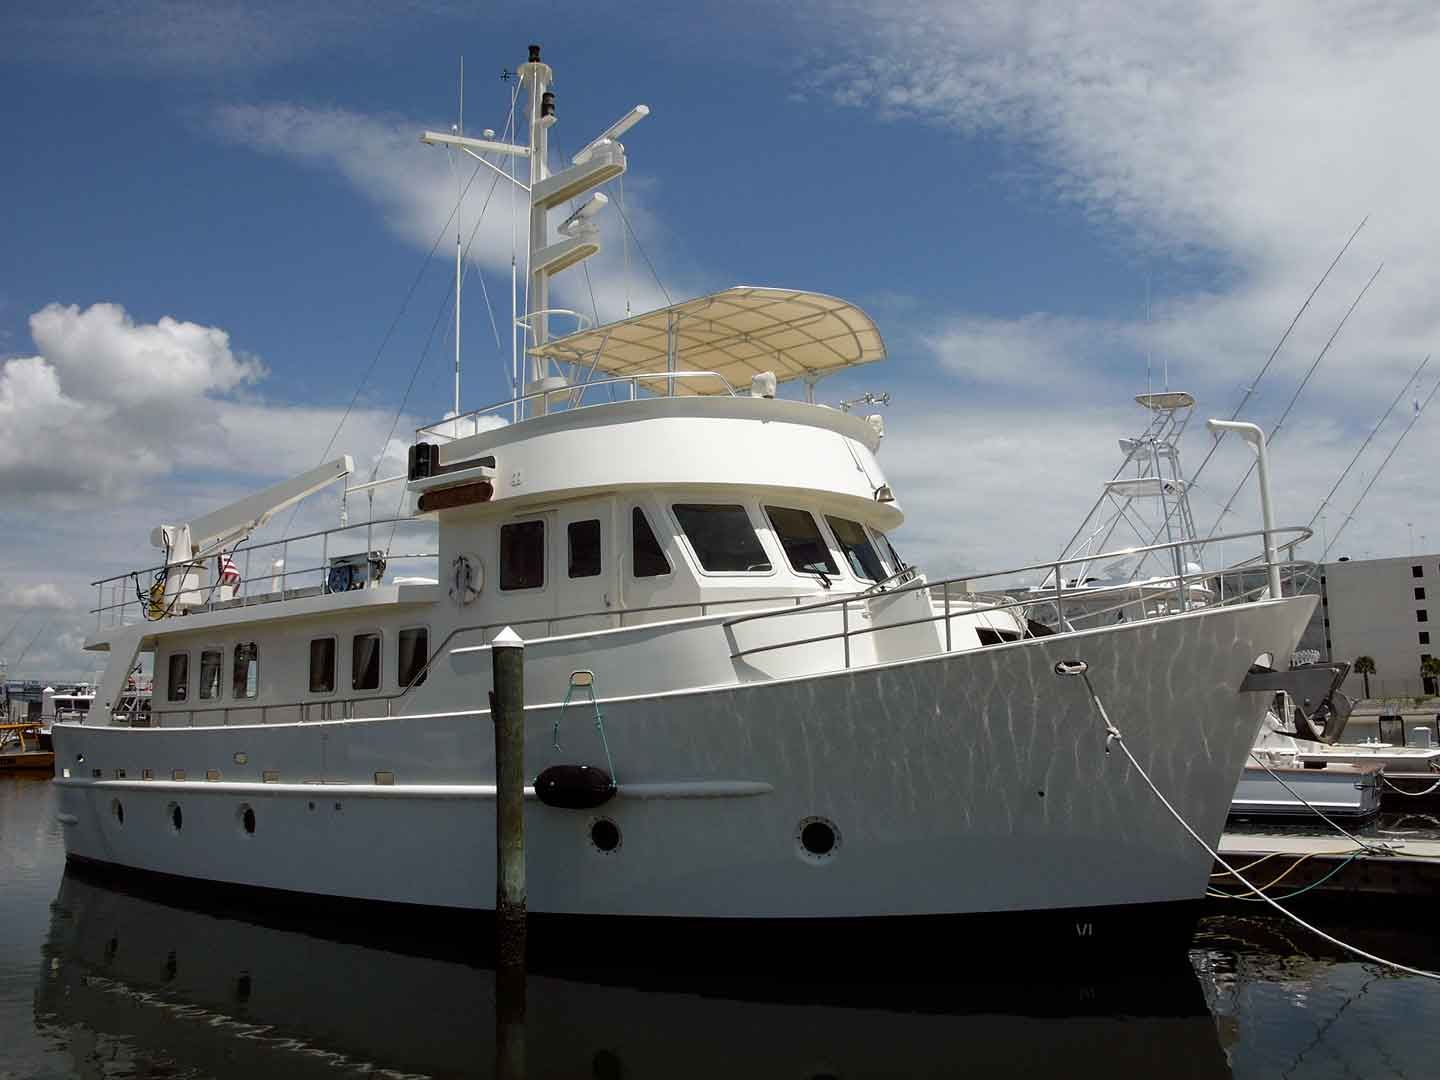 Trawler yachts used trawler yachts craigs list used cars for sale on craigslist